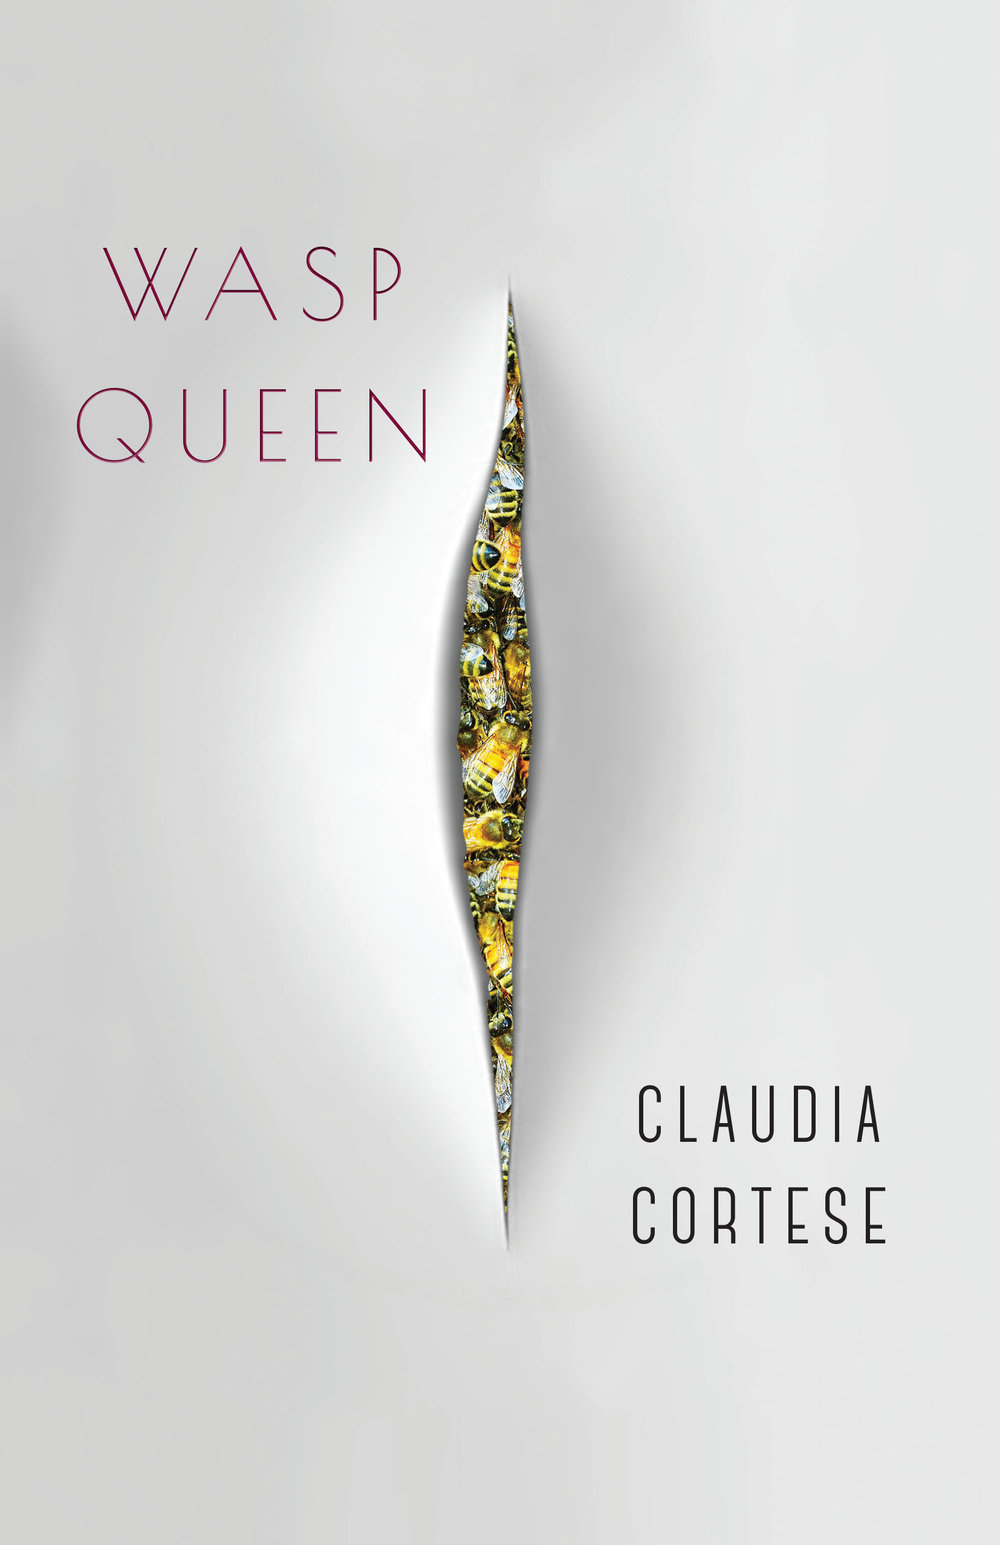 - Purchase Wasp Queen from Black Lawrence Press.